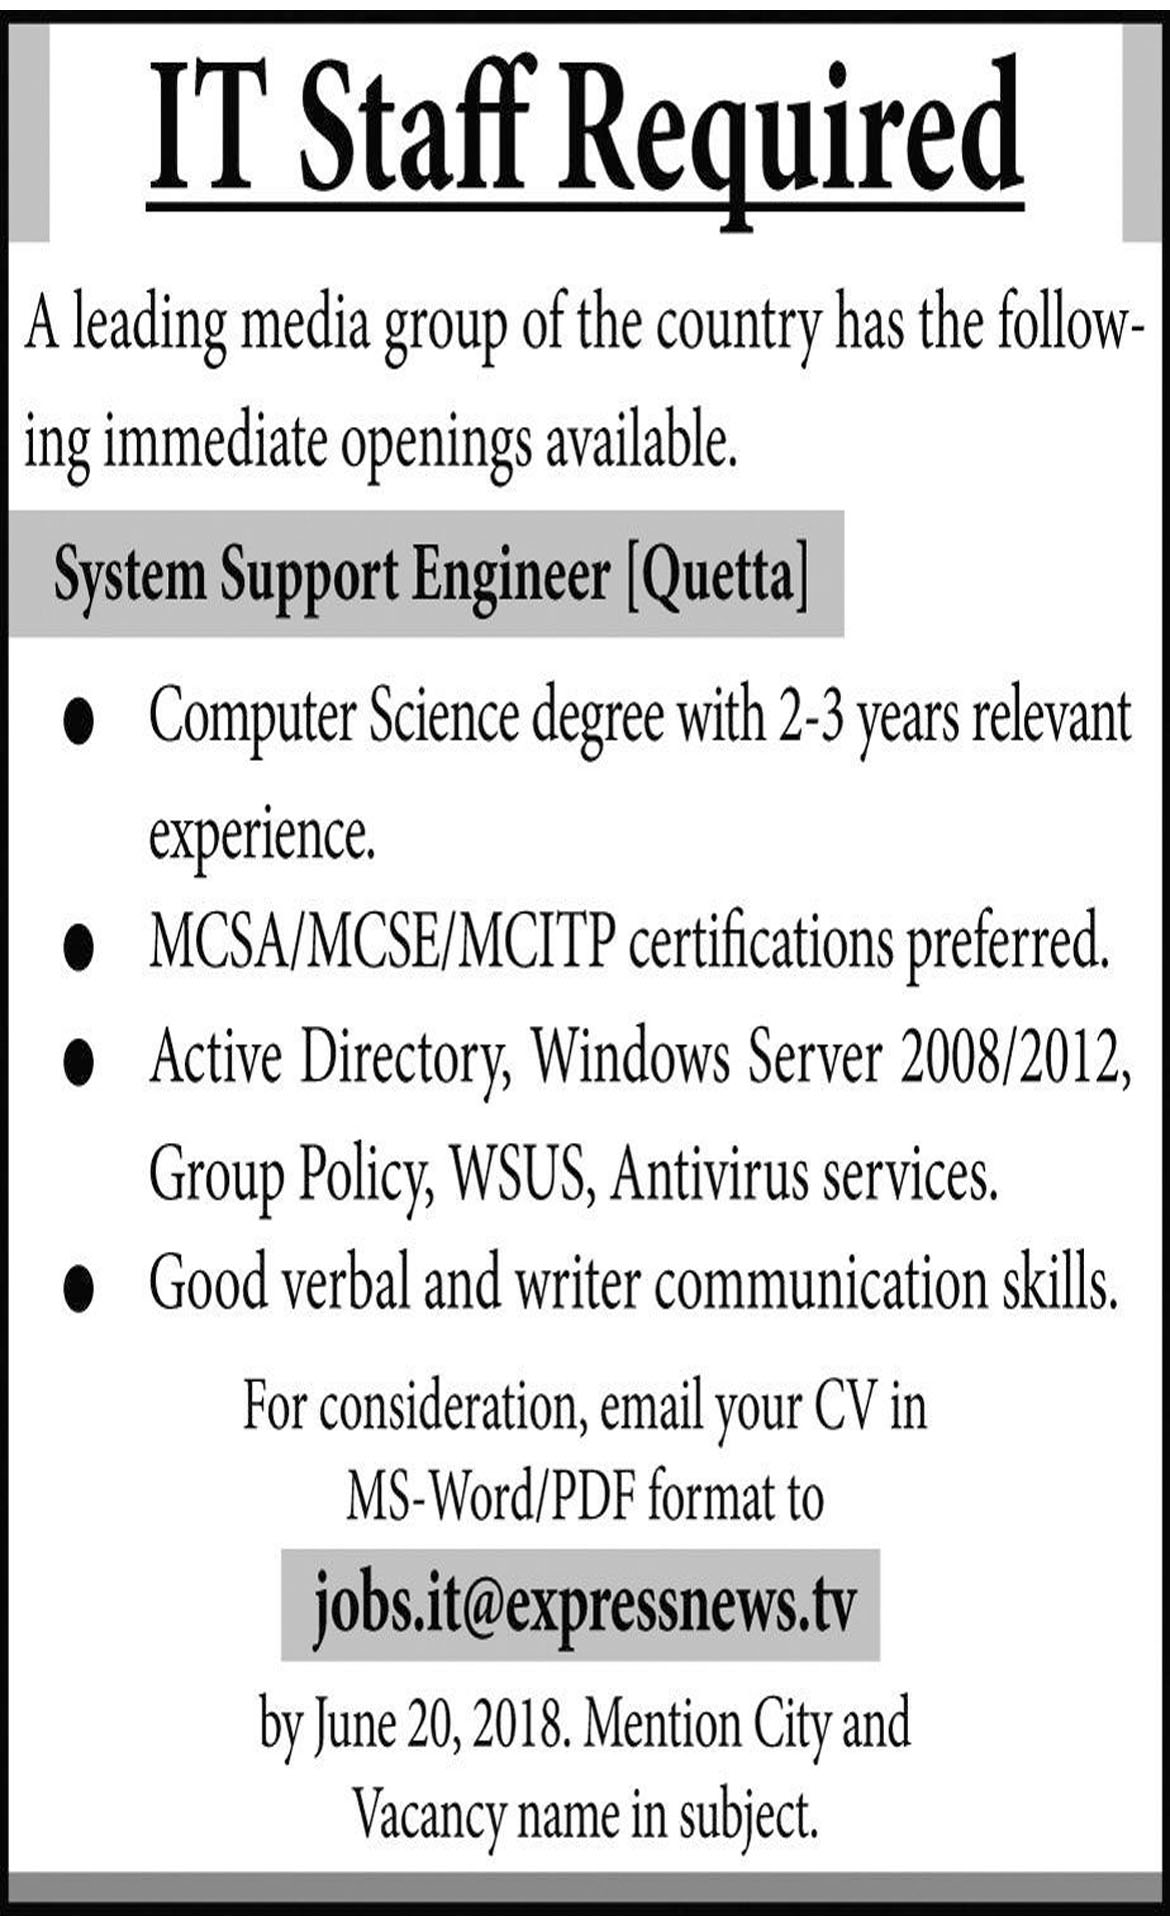 Jobs In IT Staff Required In Quetta 11 Oct 2018